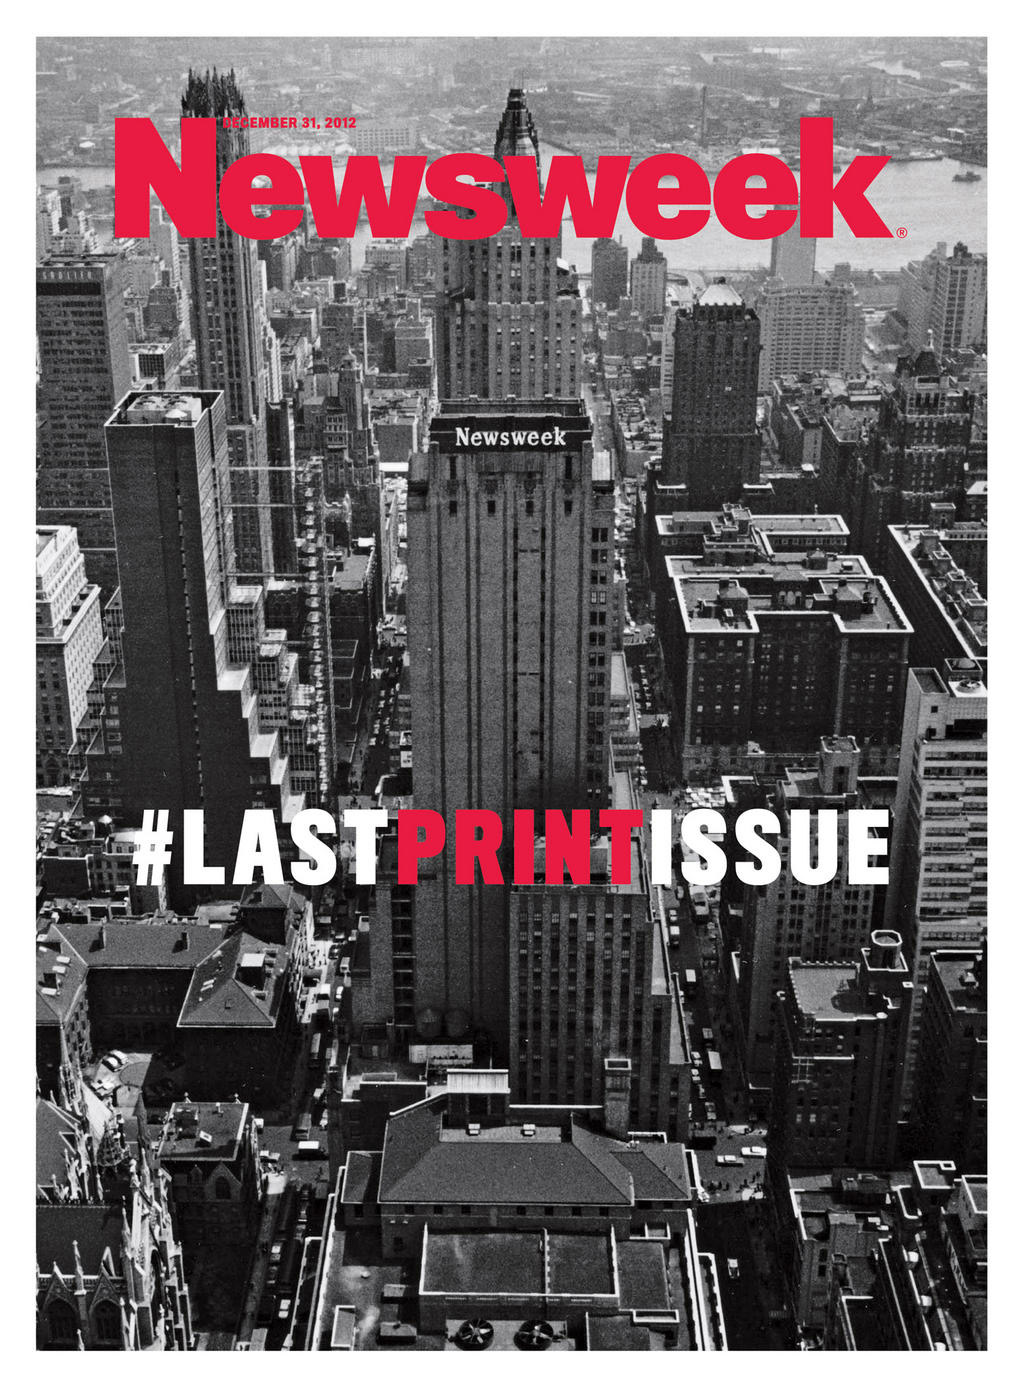 Newsweek says goodbye to print. #lastprintissue